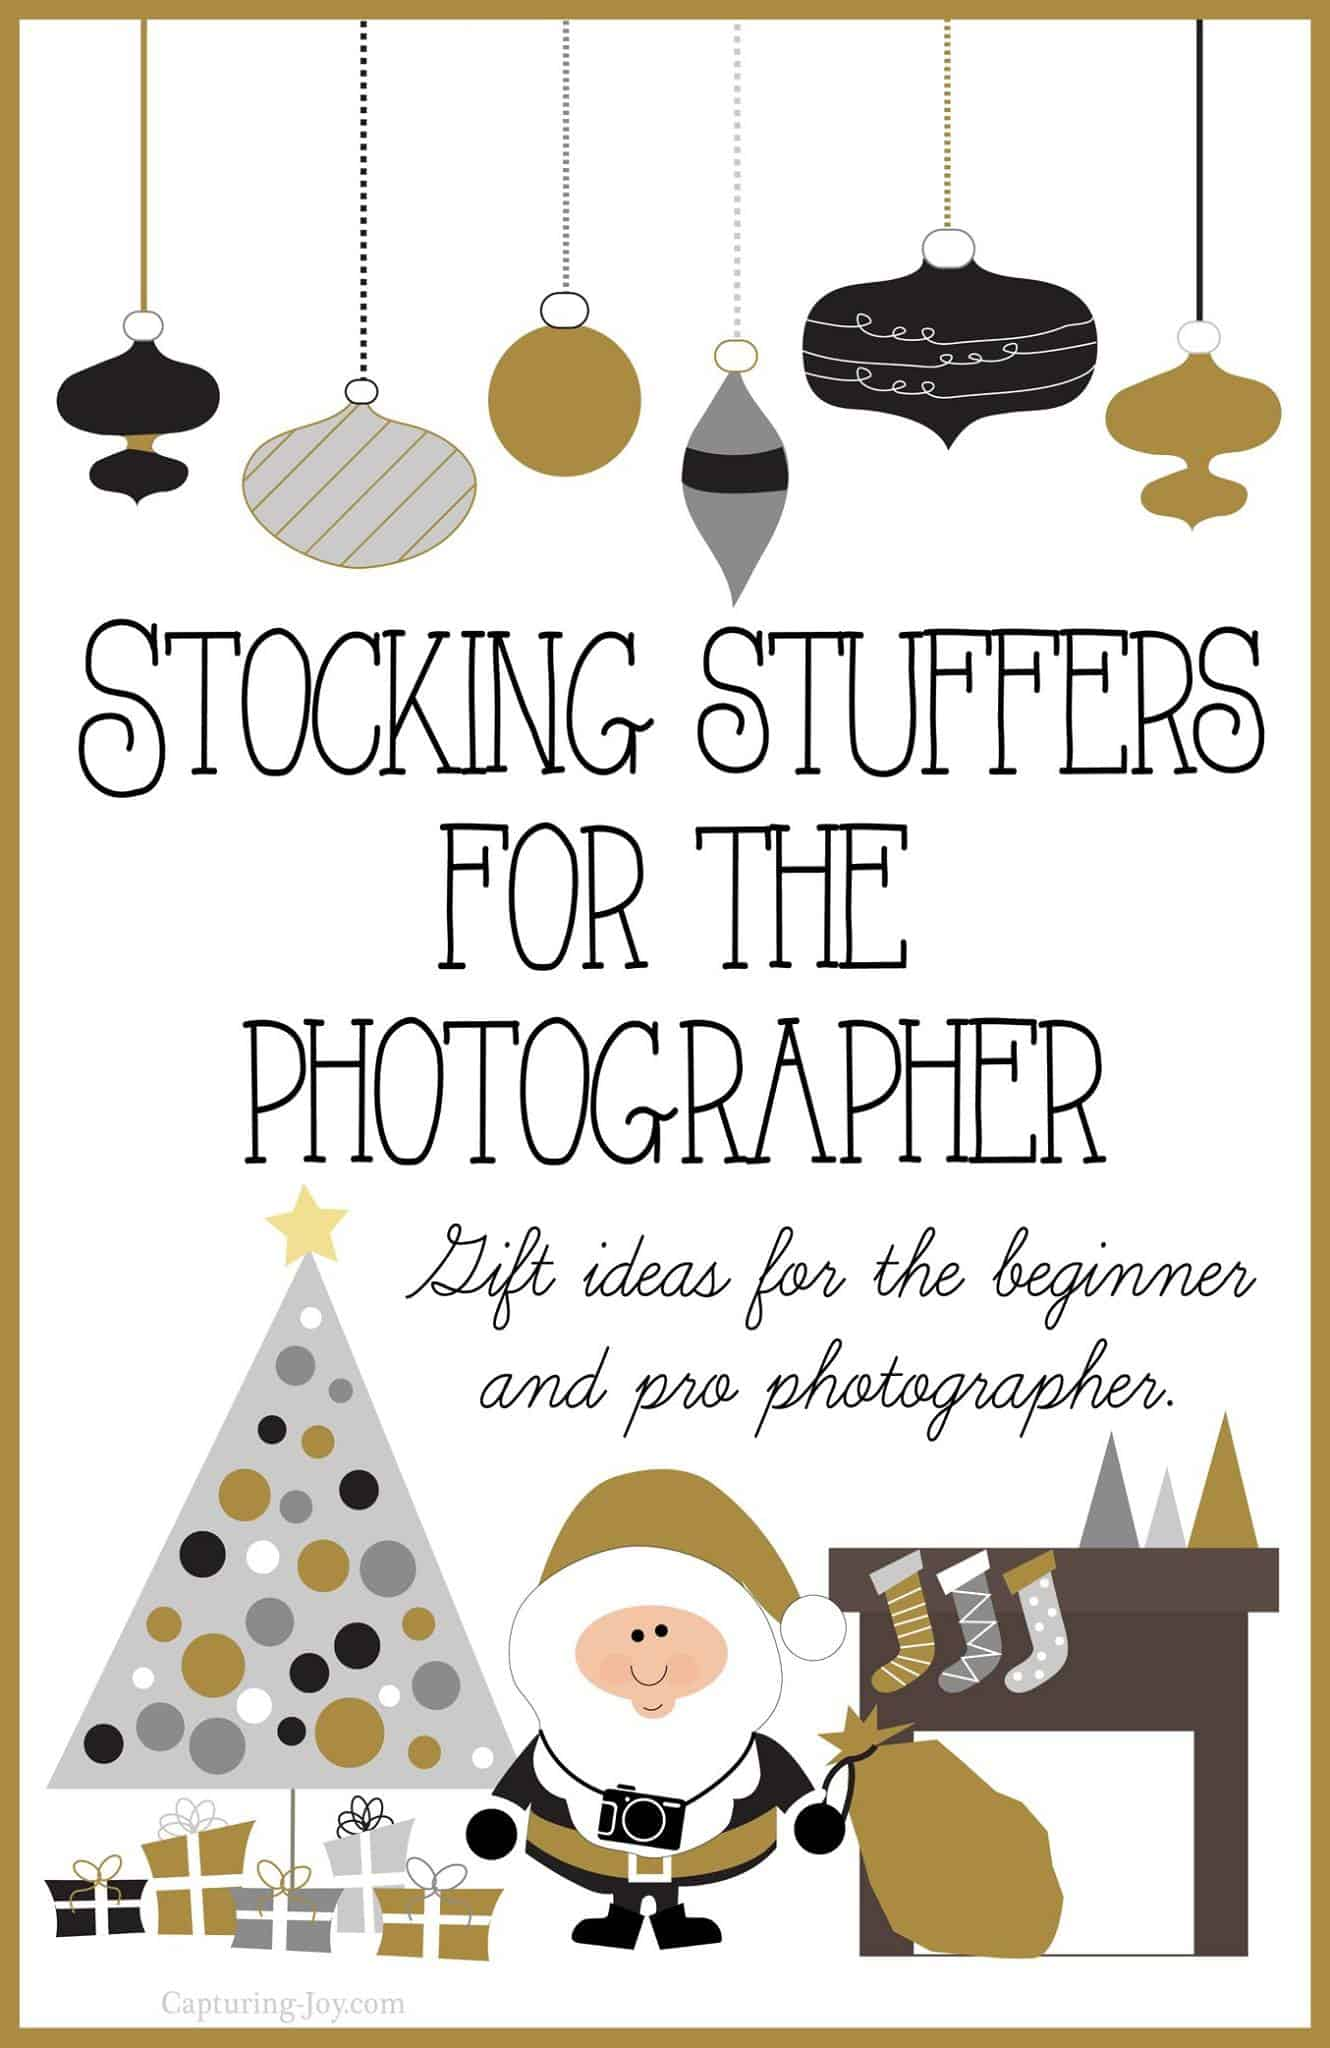 Stocking Stuffer Ideas for the Photographer